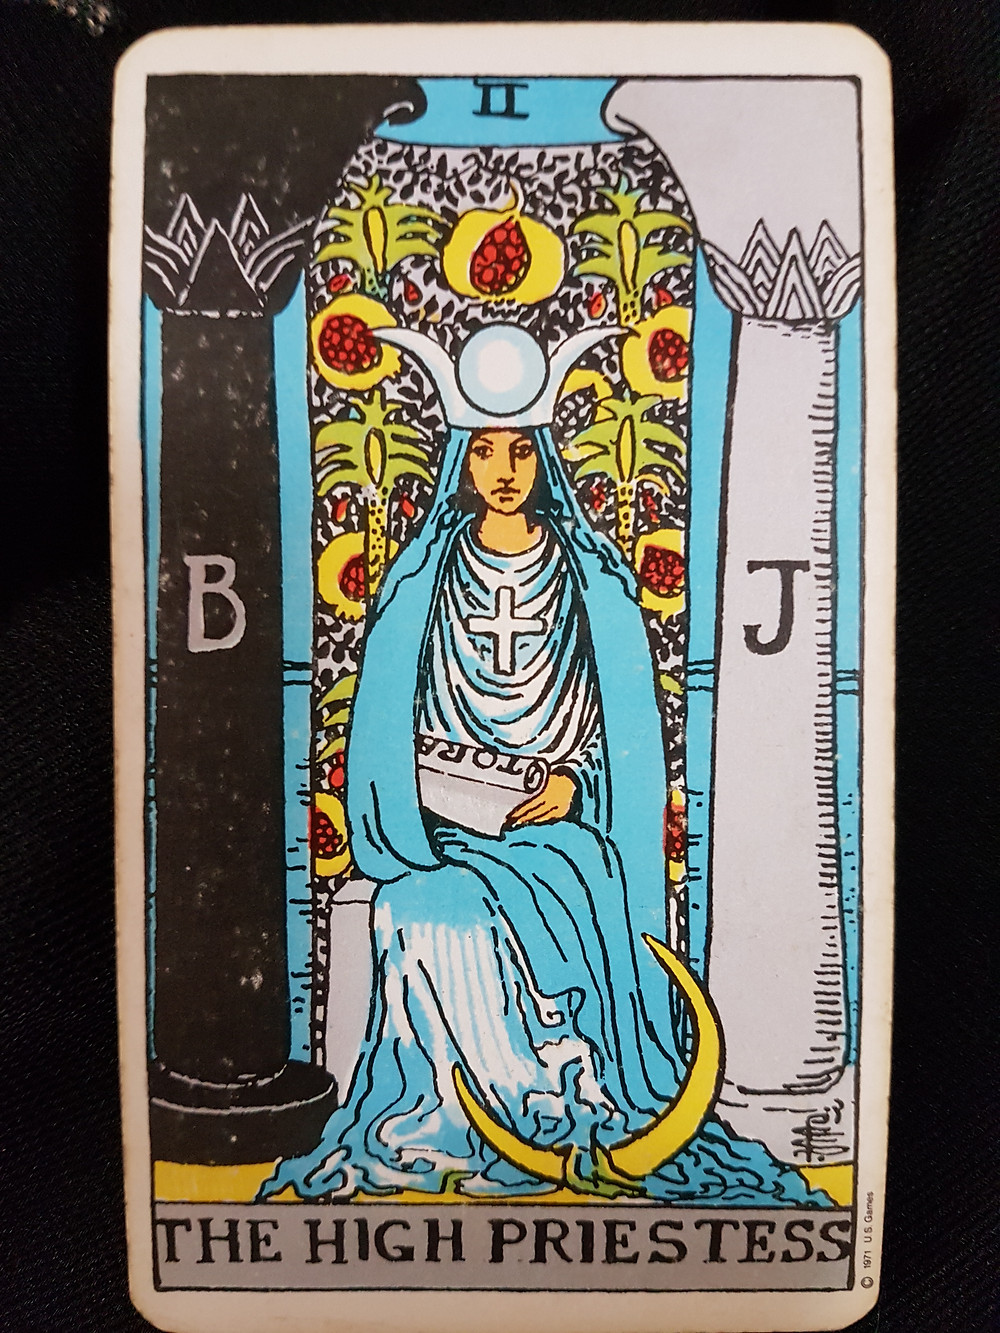 The High Priestess 2 - lynsreadings.com